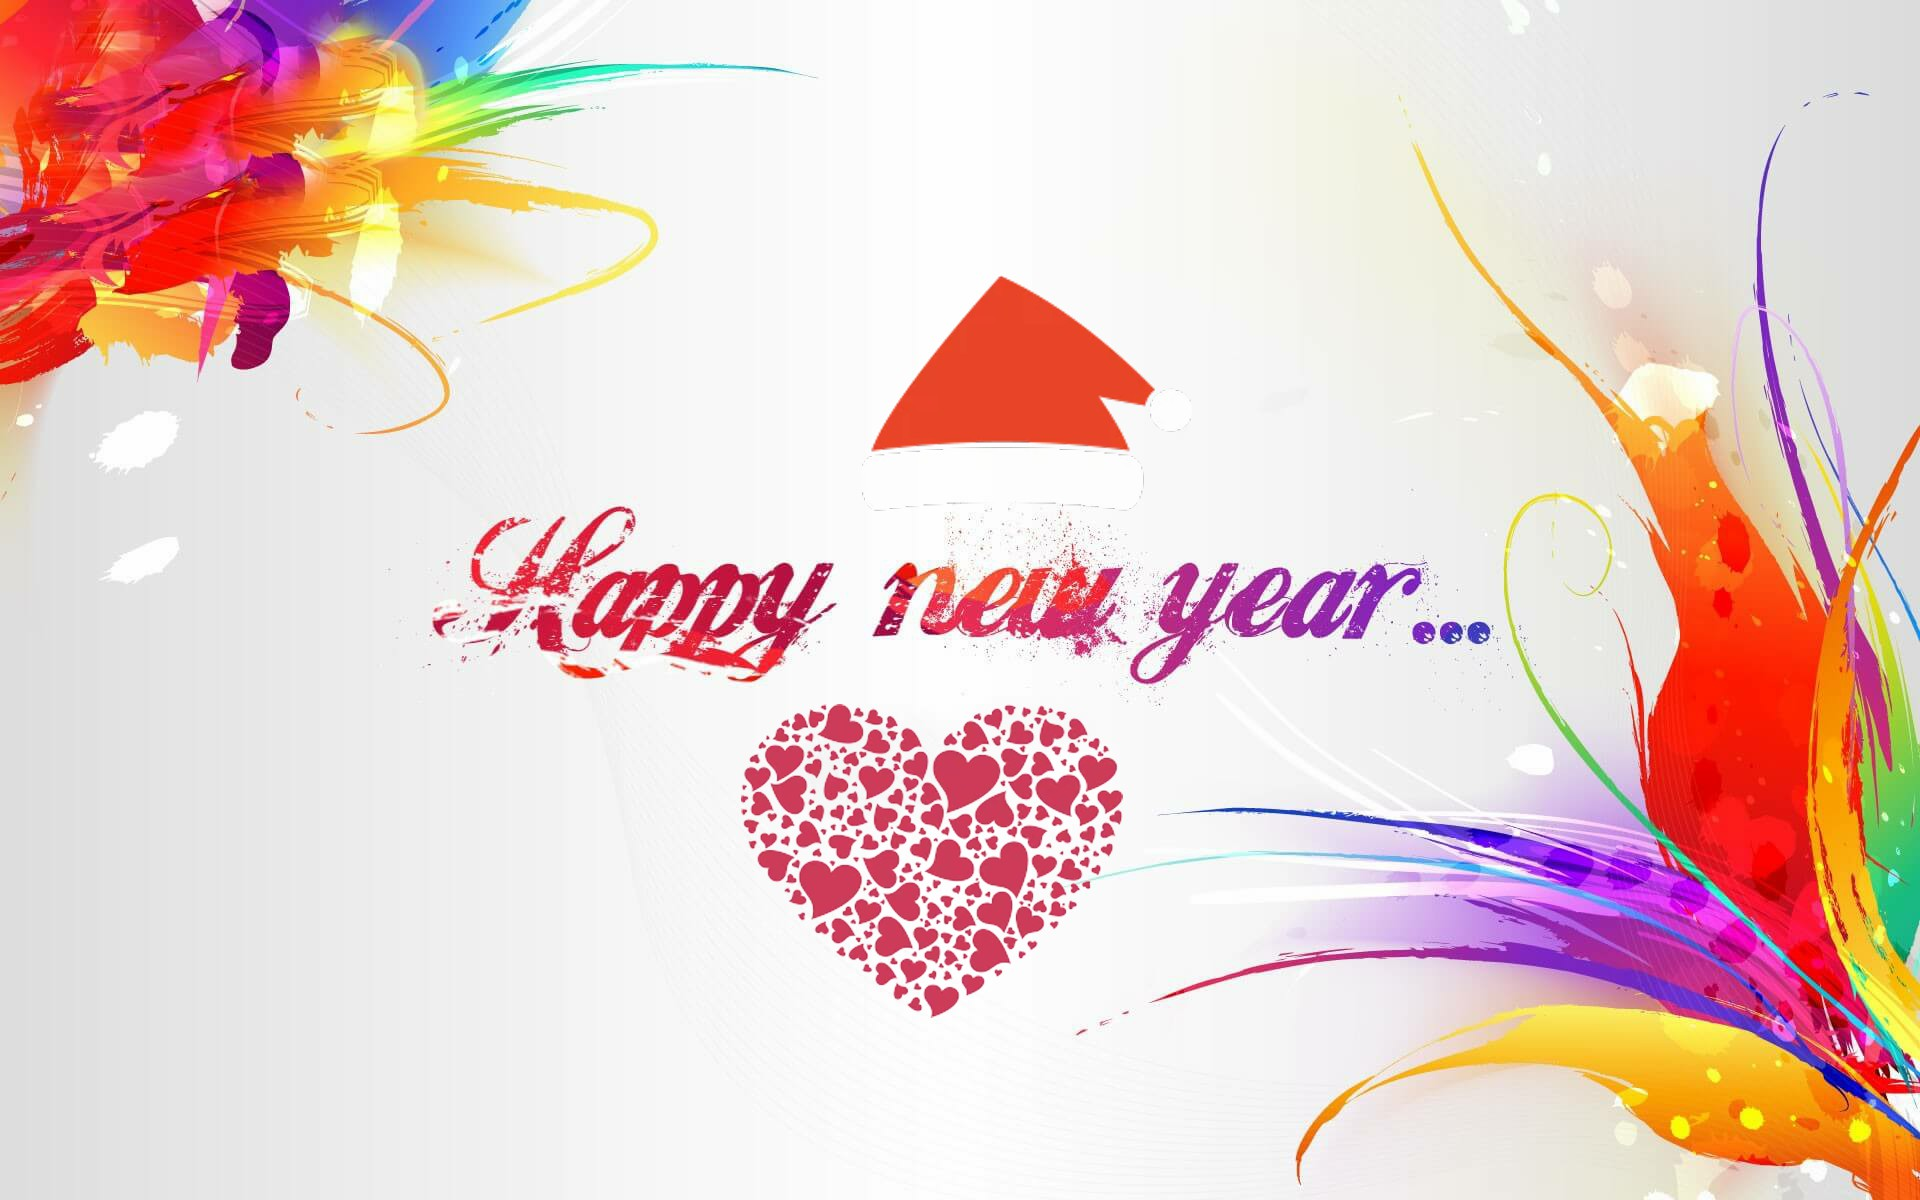 New Year 2019 Wallpapers High Quality Download Free